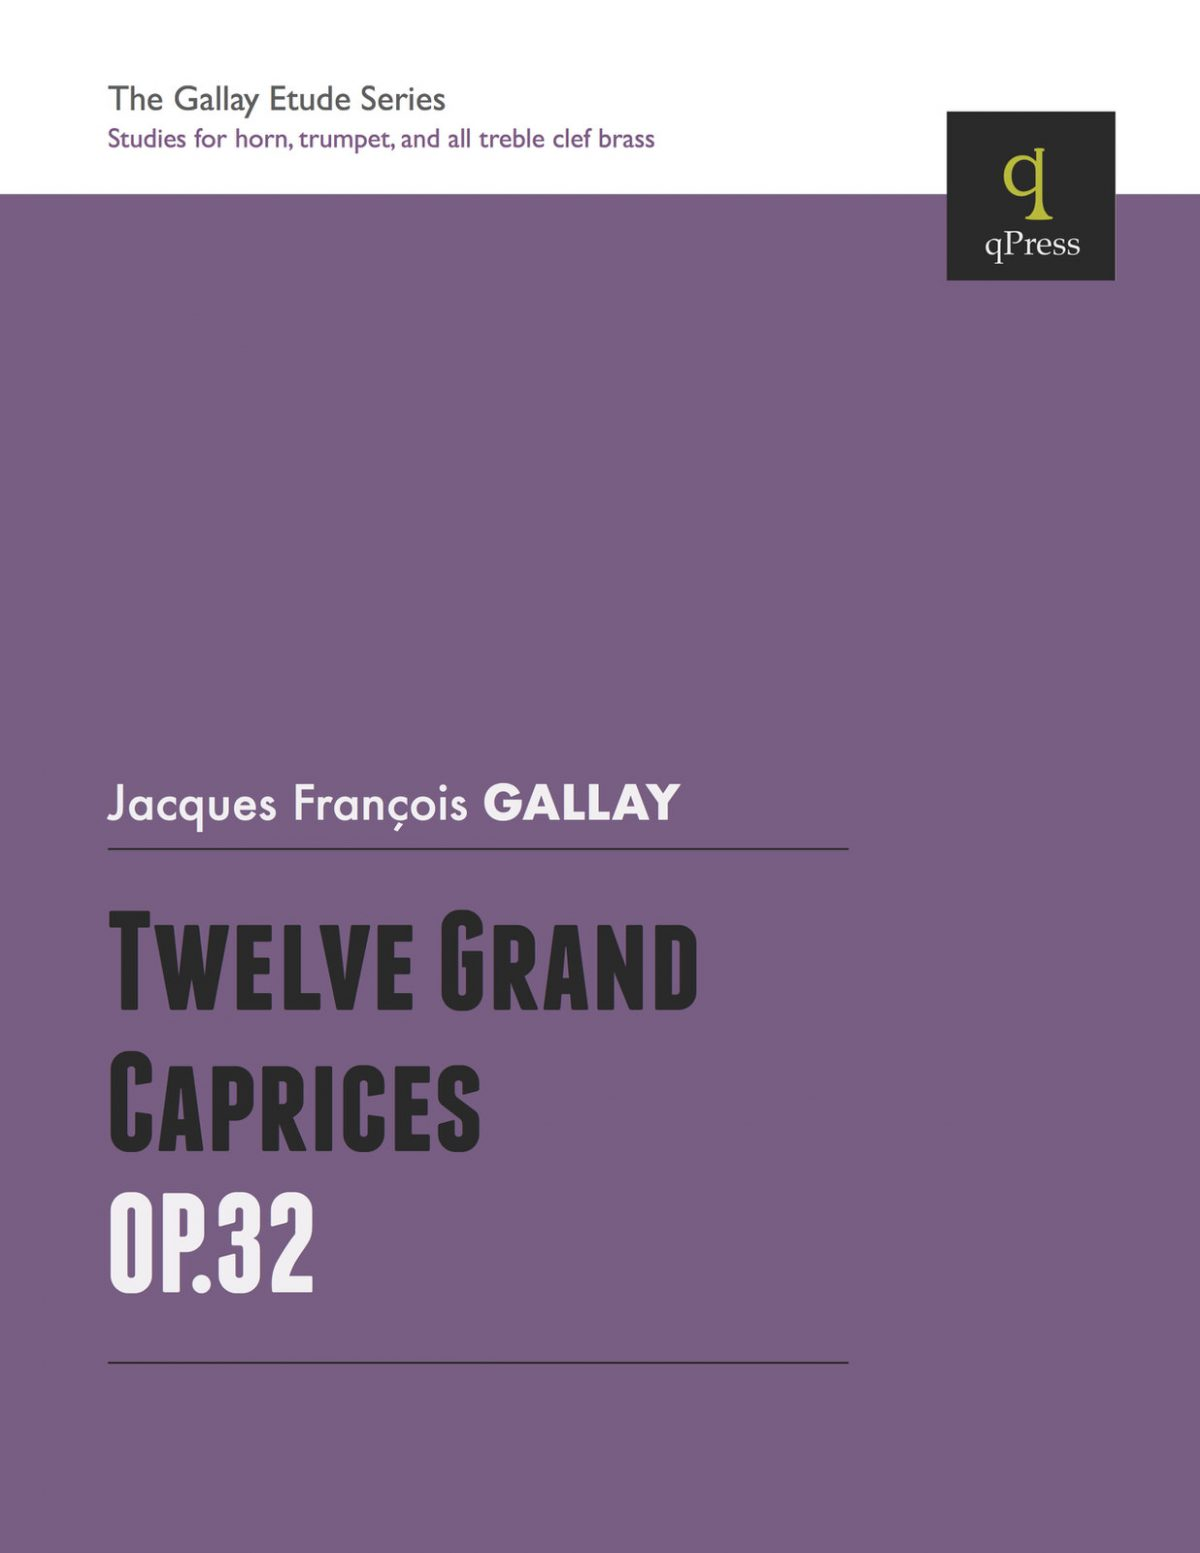 gallay-12-grand-caprices